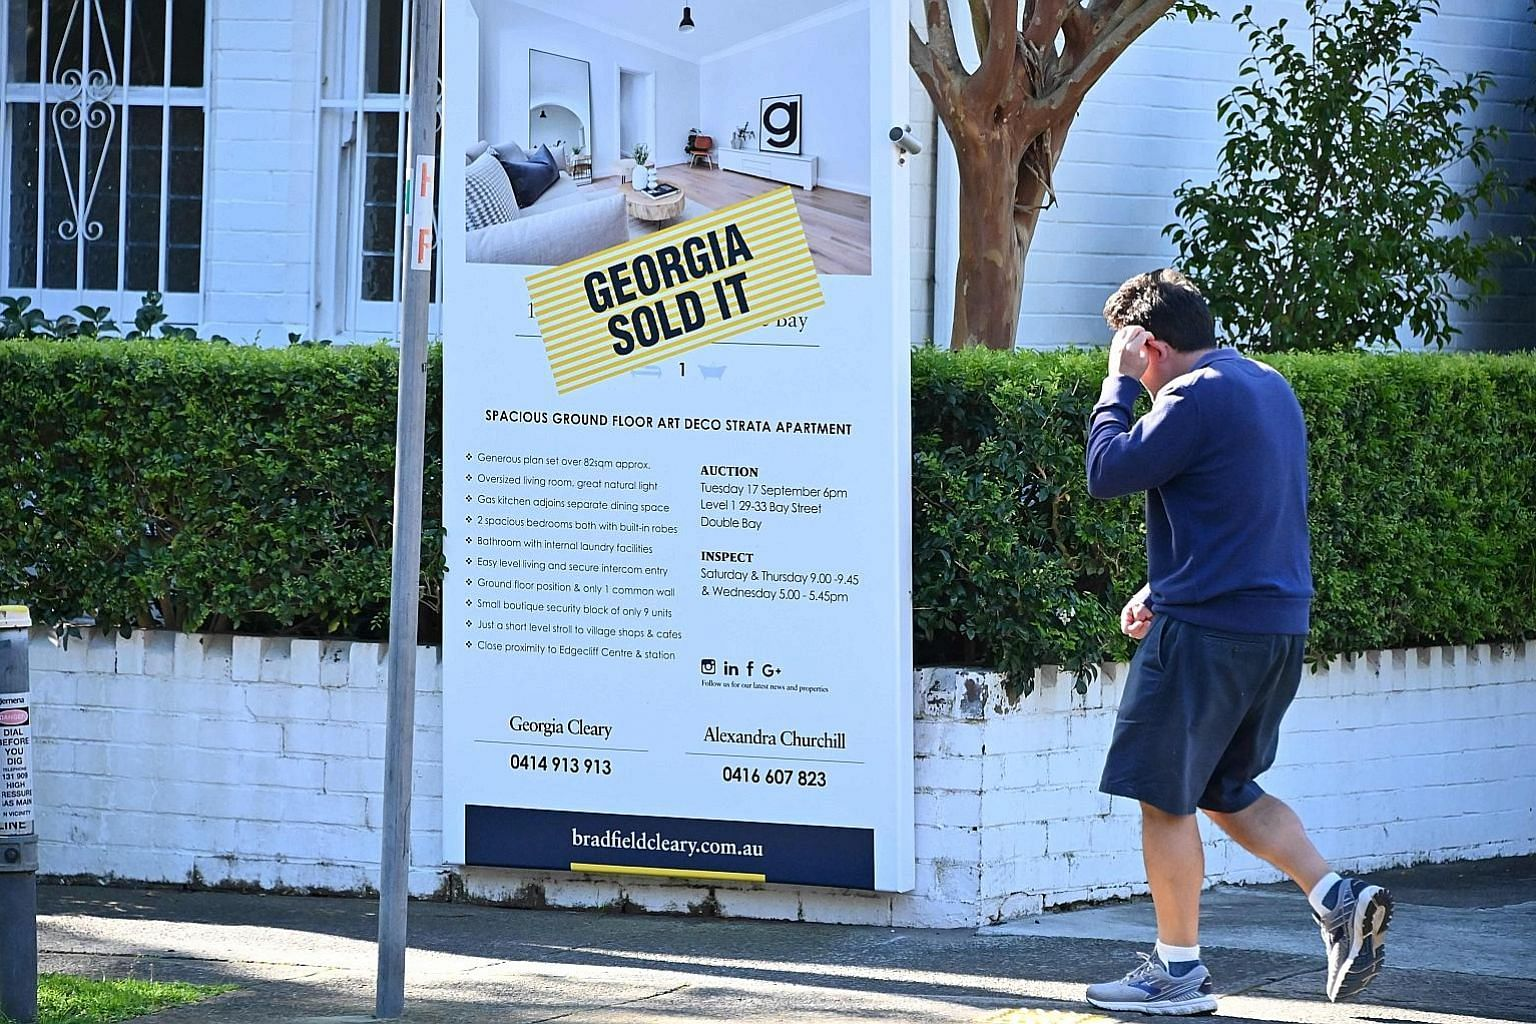 A sold sign displayed on a property in Sydney earlier this week. Australia's central bank on Tuesday lowered the cost of borrowing, slashing interest rates to 0.75 per cent amid fears about the flagging domestic economy.